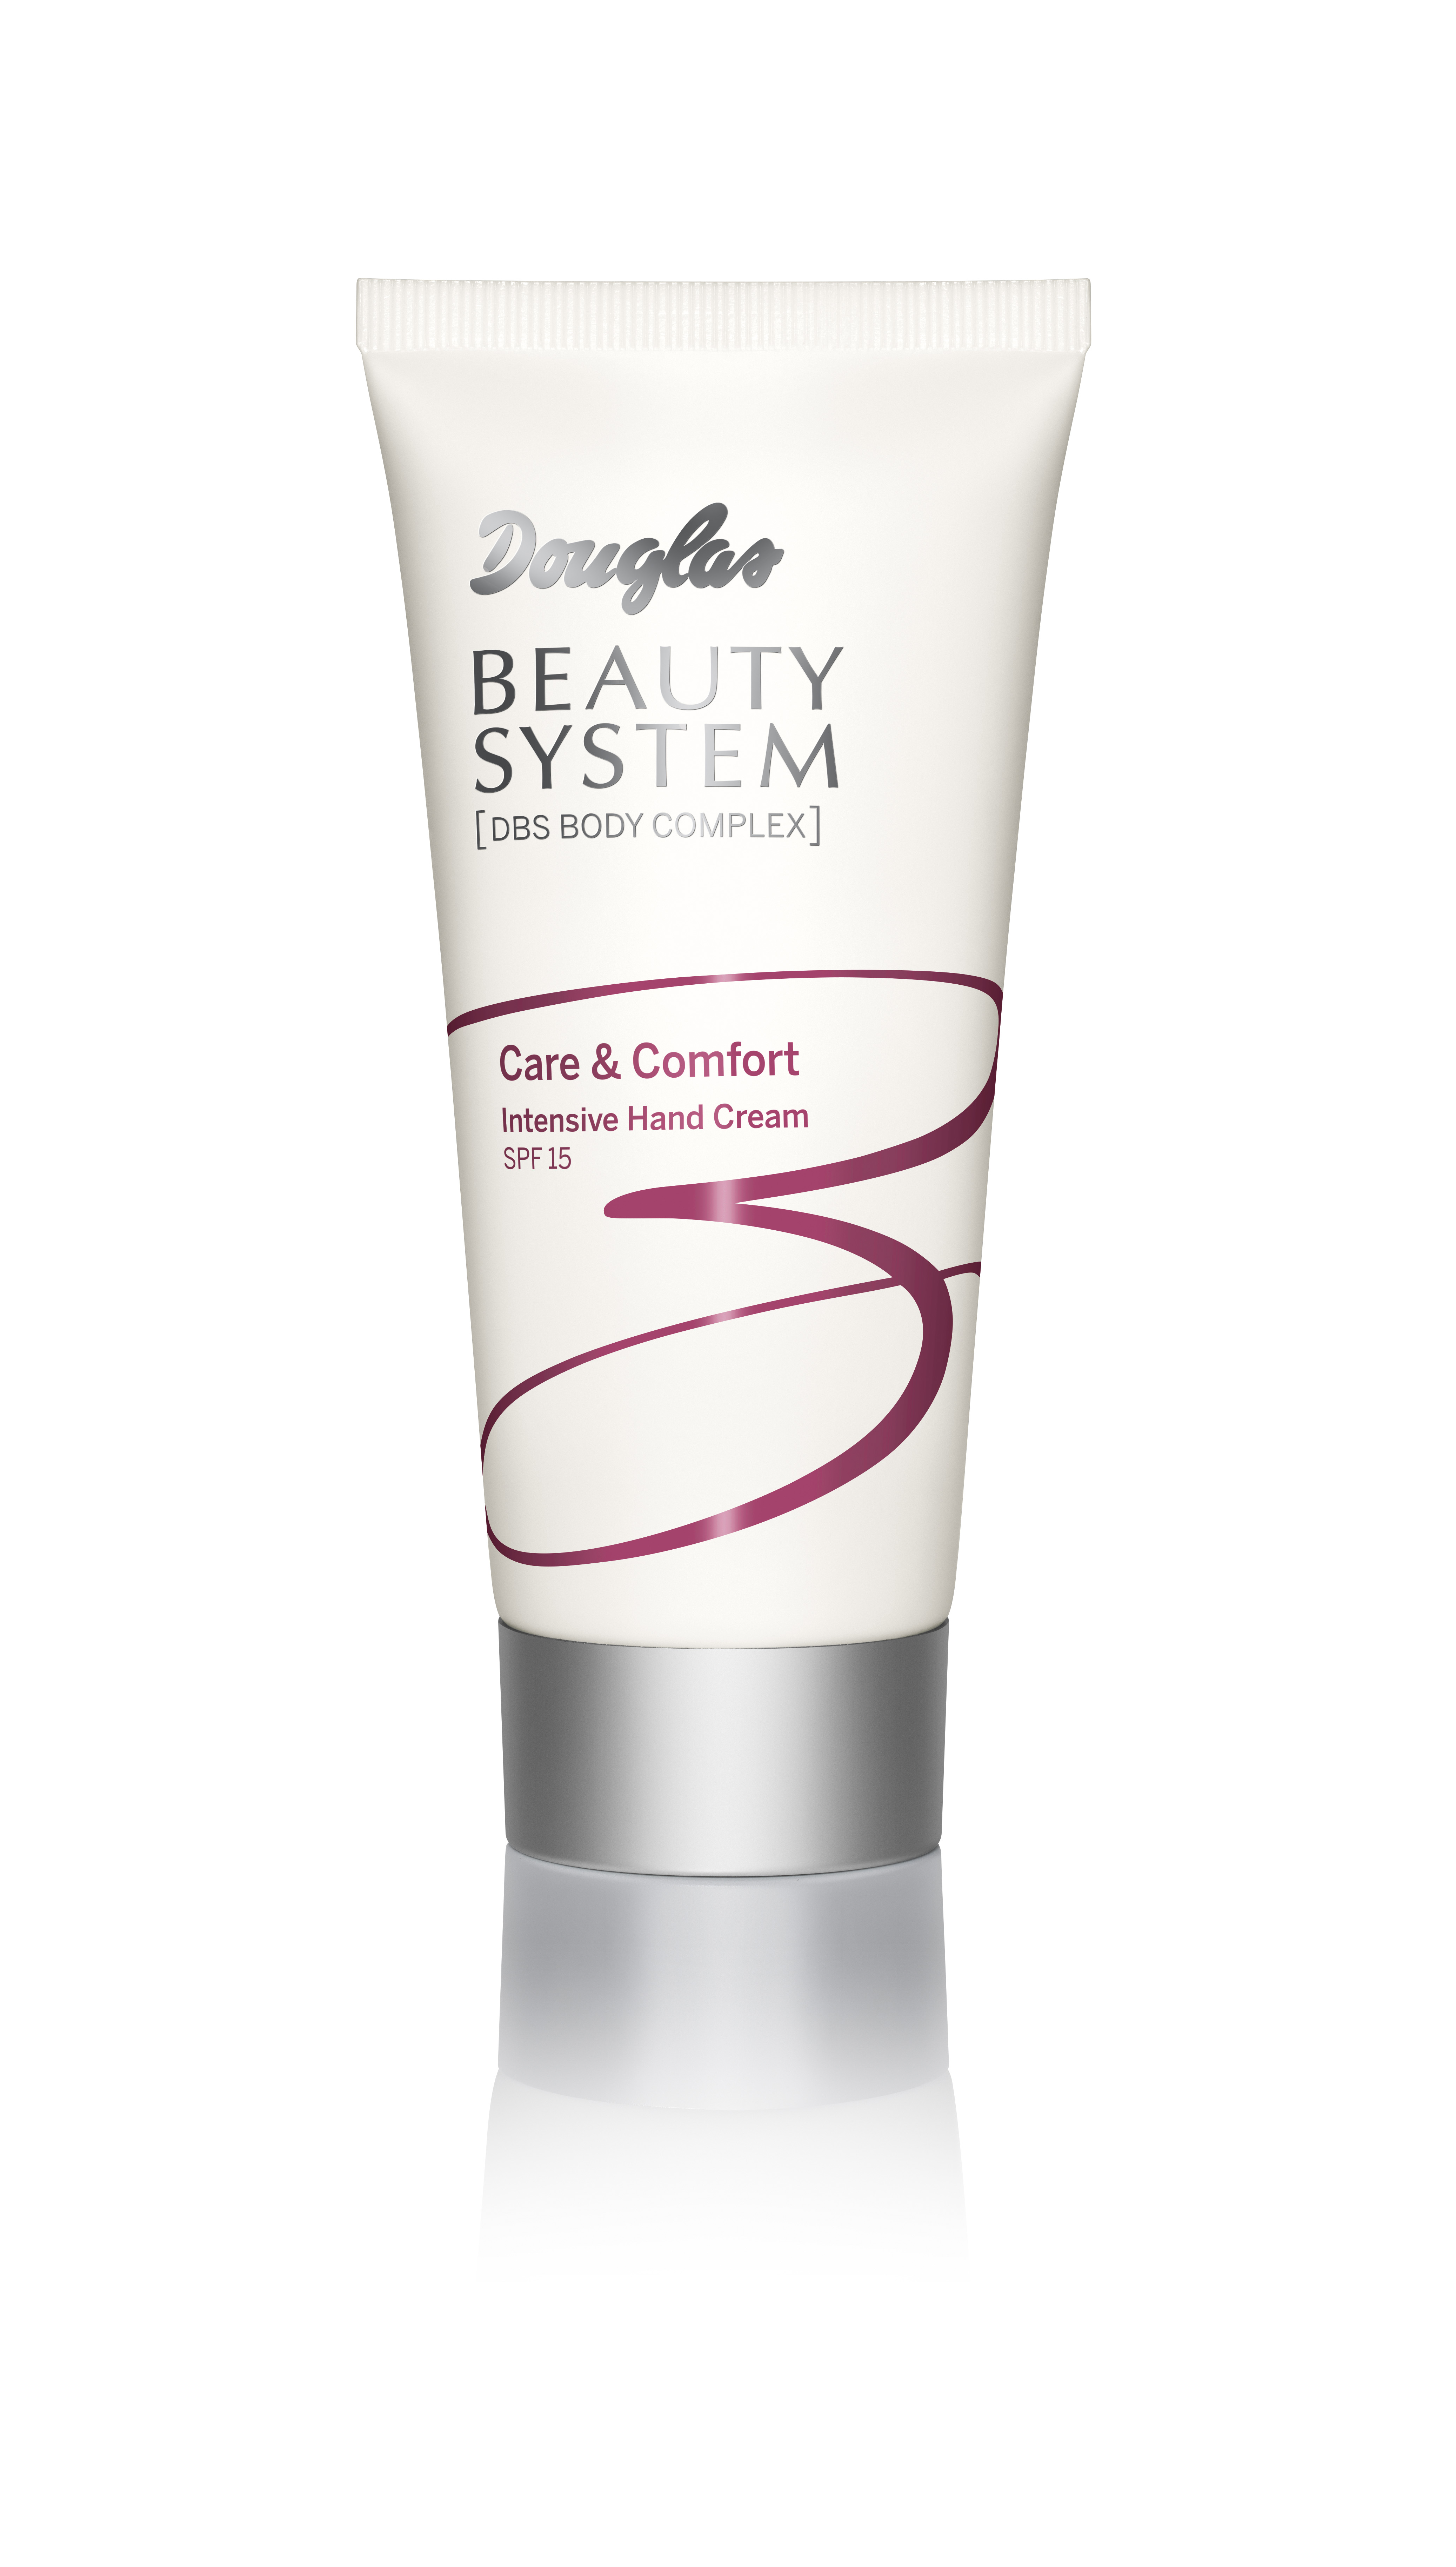 DBS_Care&Comfort_Intensive Hand Cream_775755.jpg